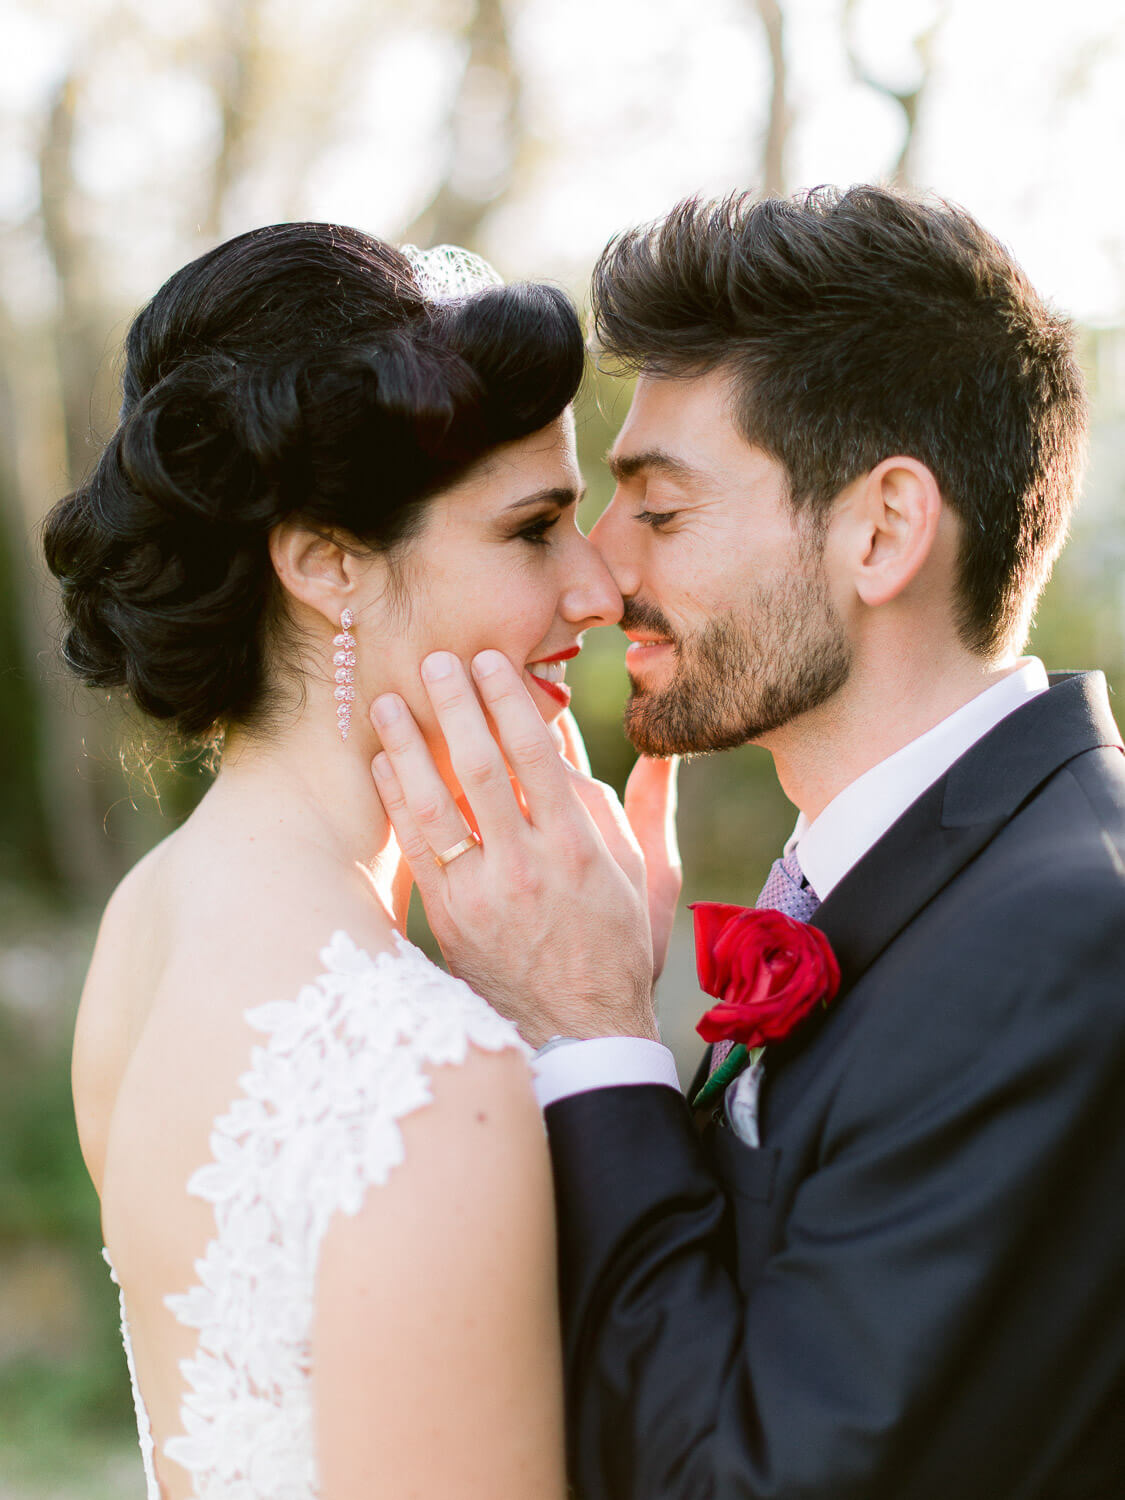 newlyweds endearing gesture close up by Portugal Wedding Photographer